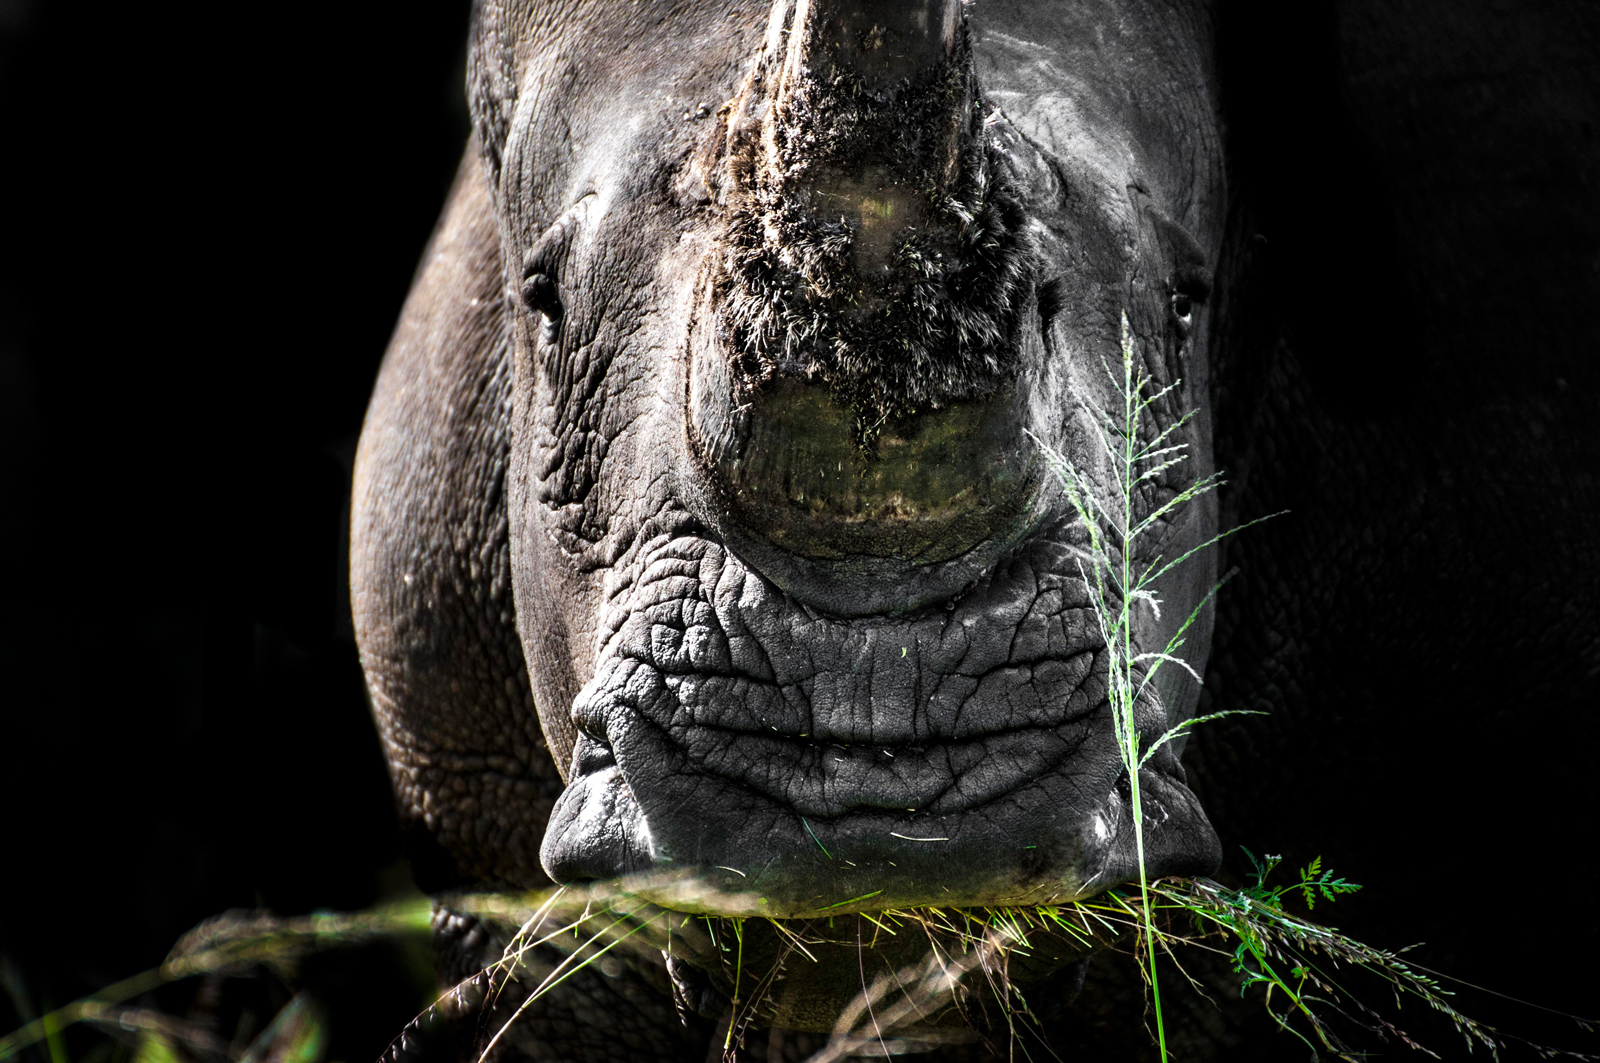 Greener pastures for a rhino ©Mark Winckler